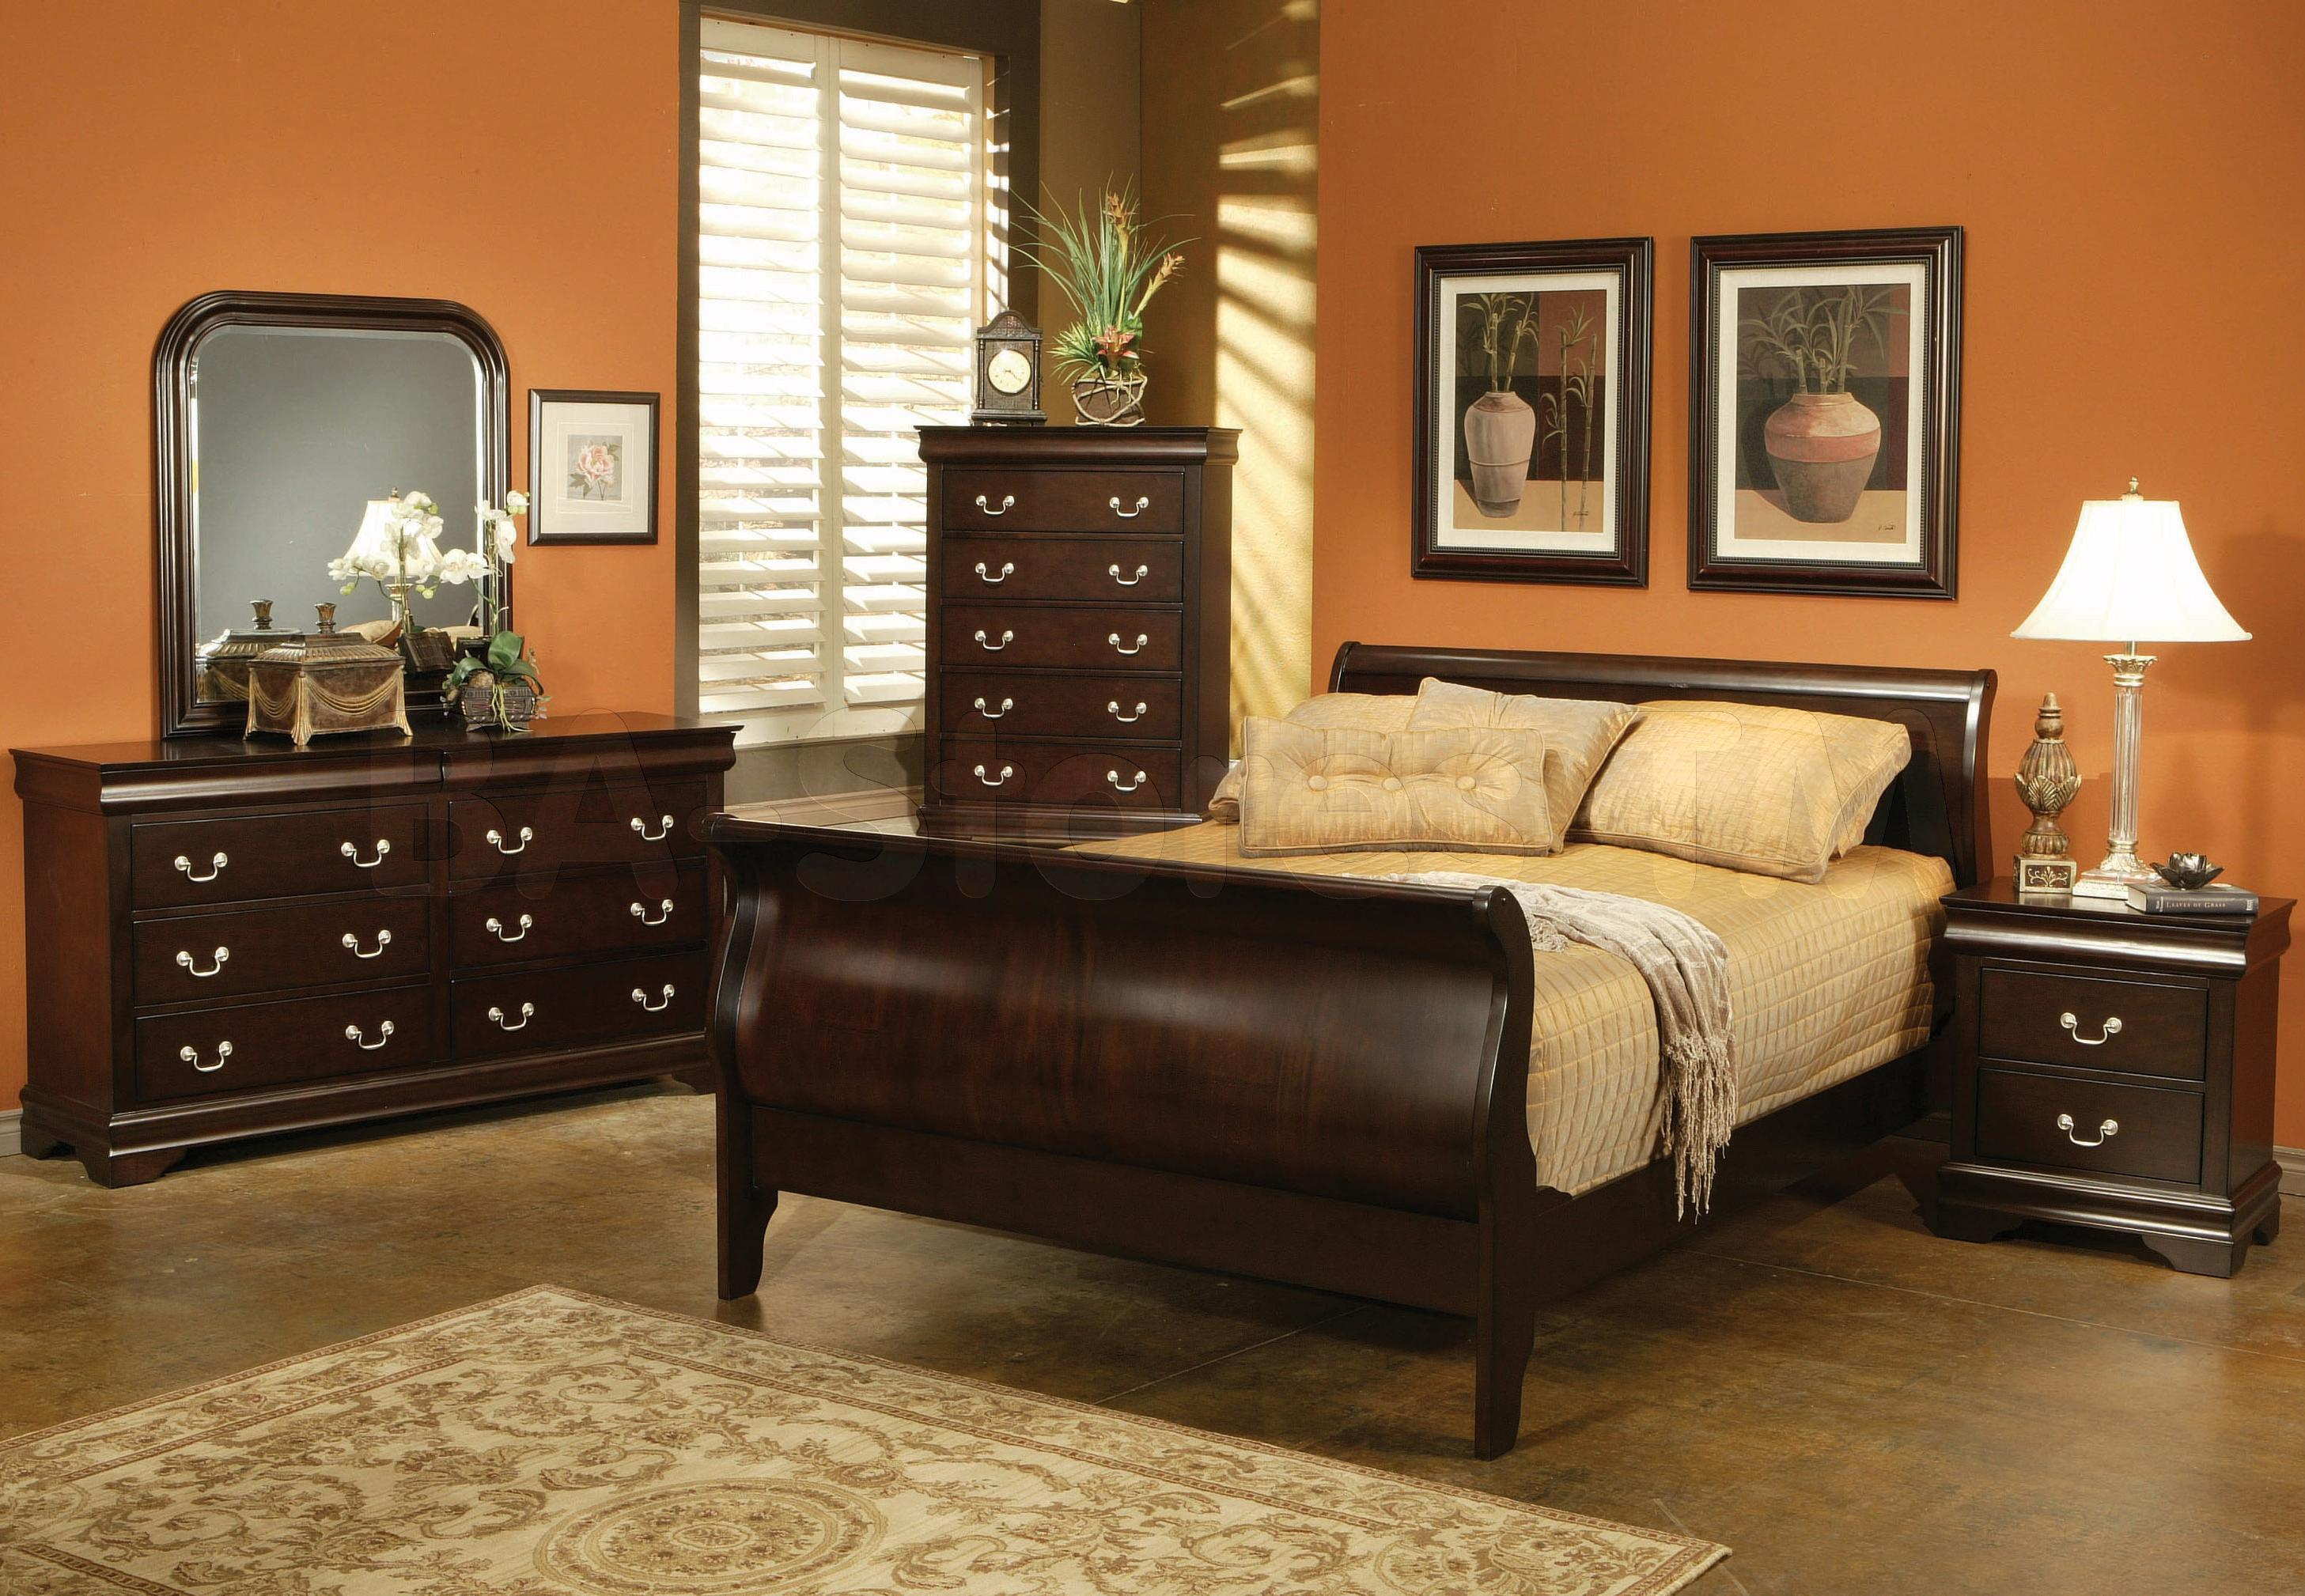 Master Bedroom Furniture Sets The Idea Of Home Inspiration